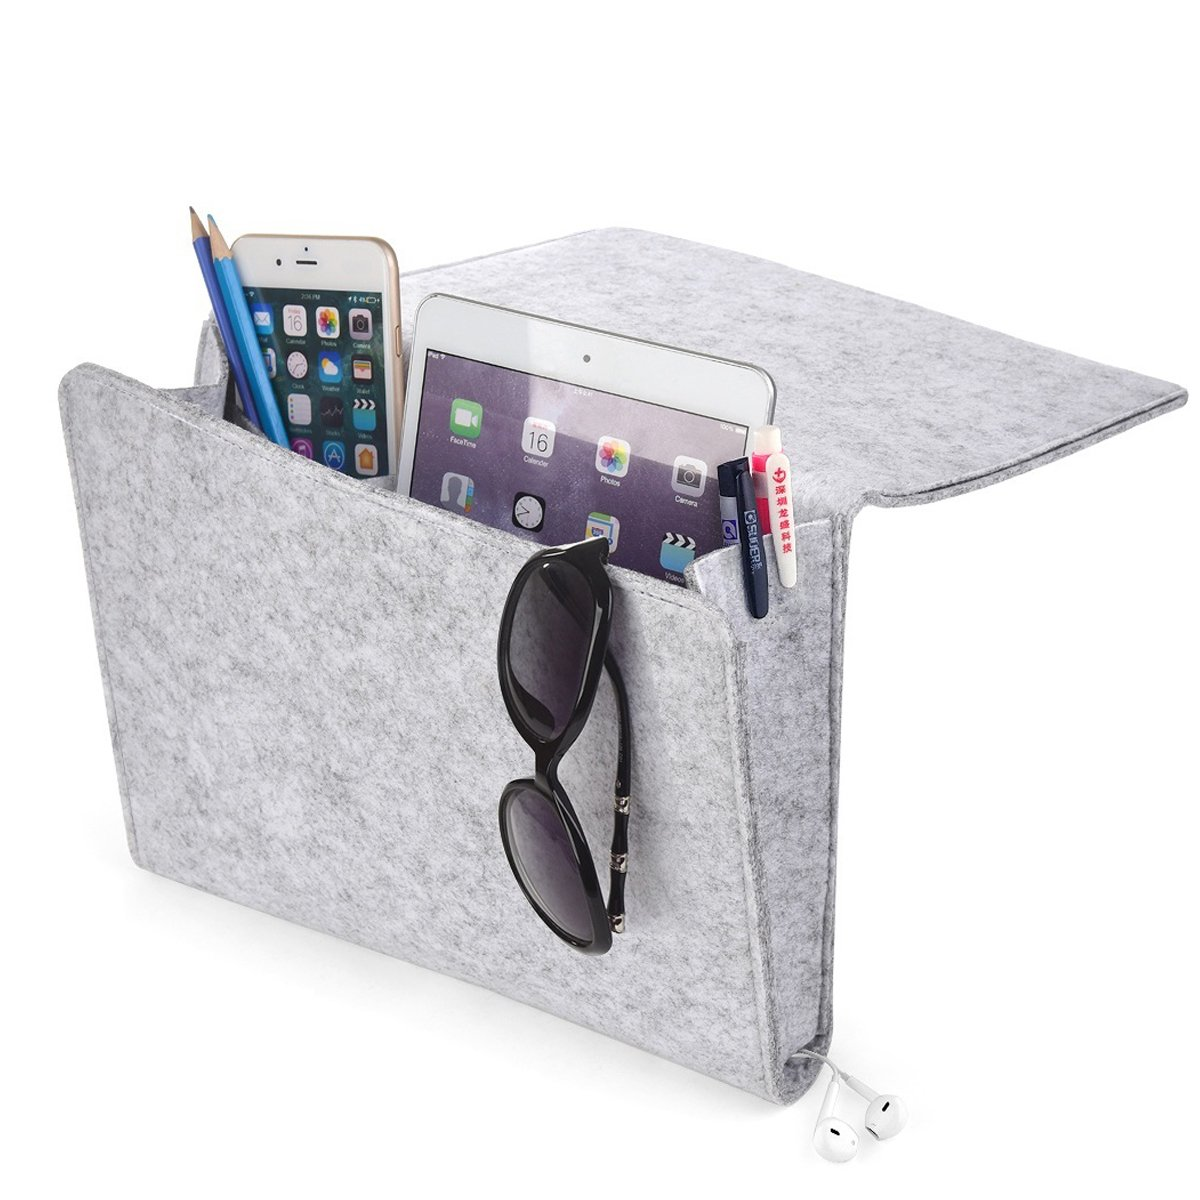 [Upgraded] Thicker Bedside Caddy, Bed Caddy Storage Organizer Home Sofa Desk Felt Bedside Pocket with Cable Holes 2 Small Pockets for Organizing Tablet Magazine Phone Small Things Holder (Light-Gray)